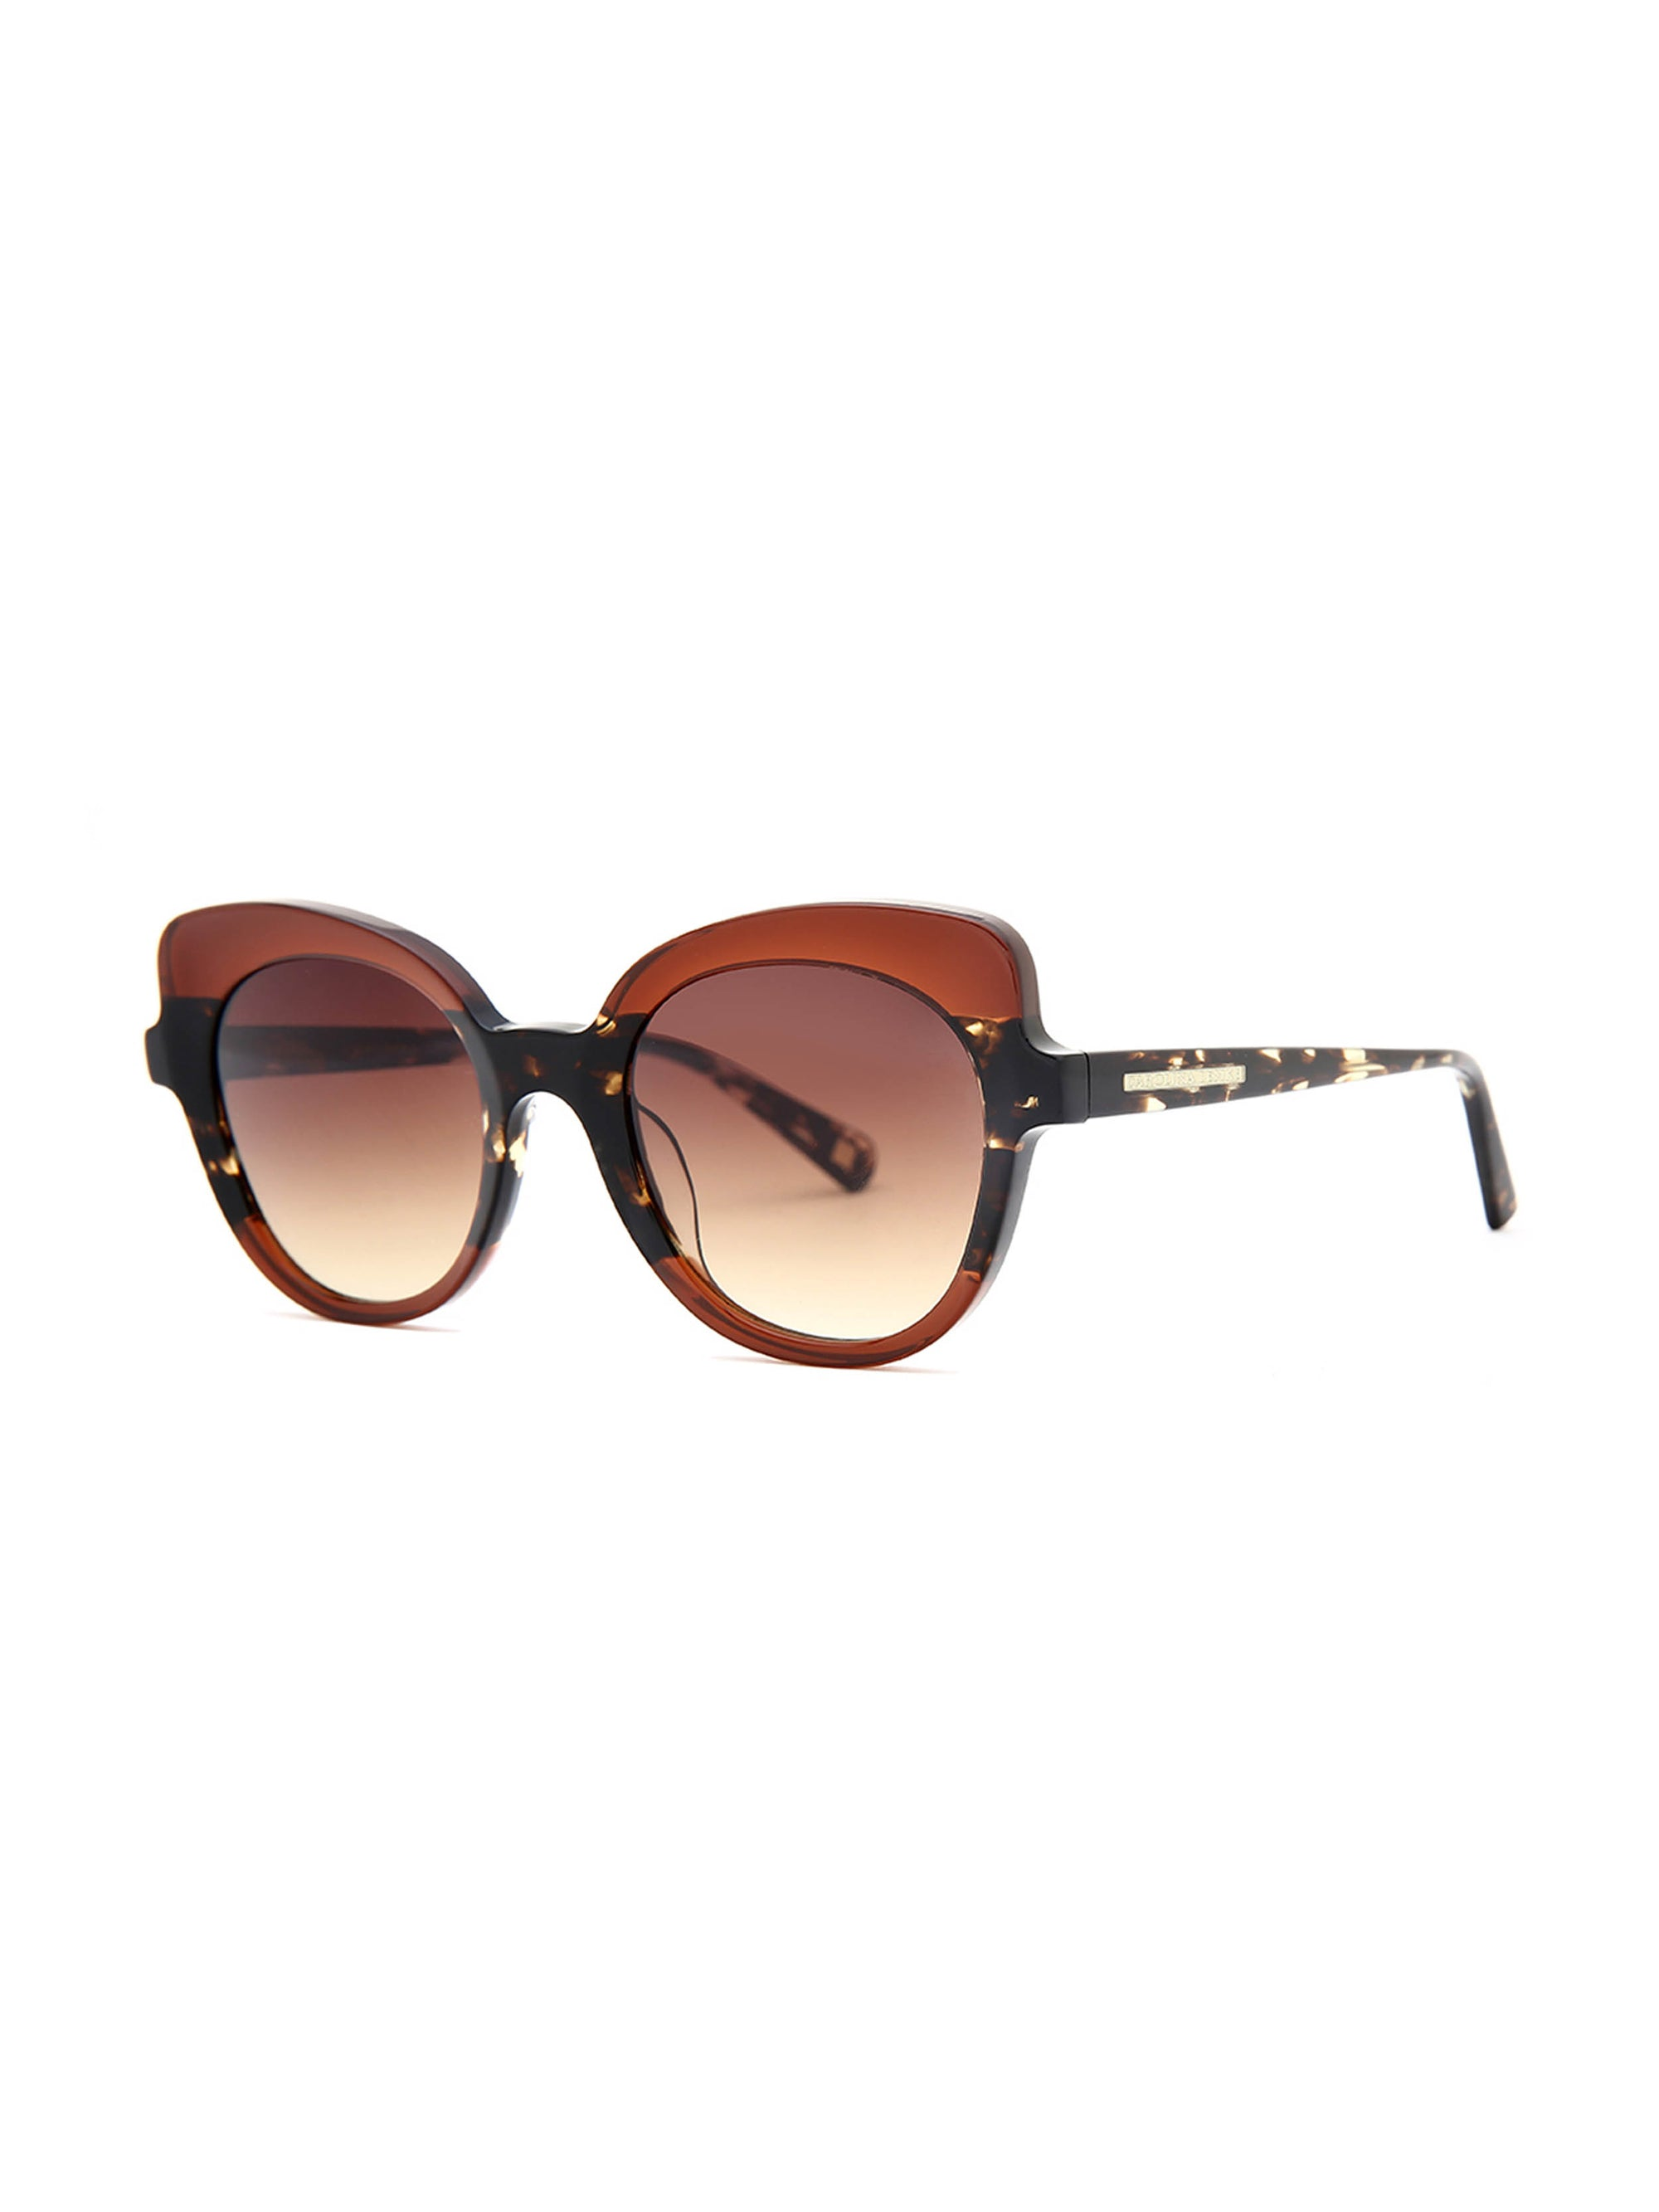 Lentes Carolina Lemke CL7722 02